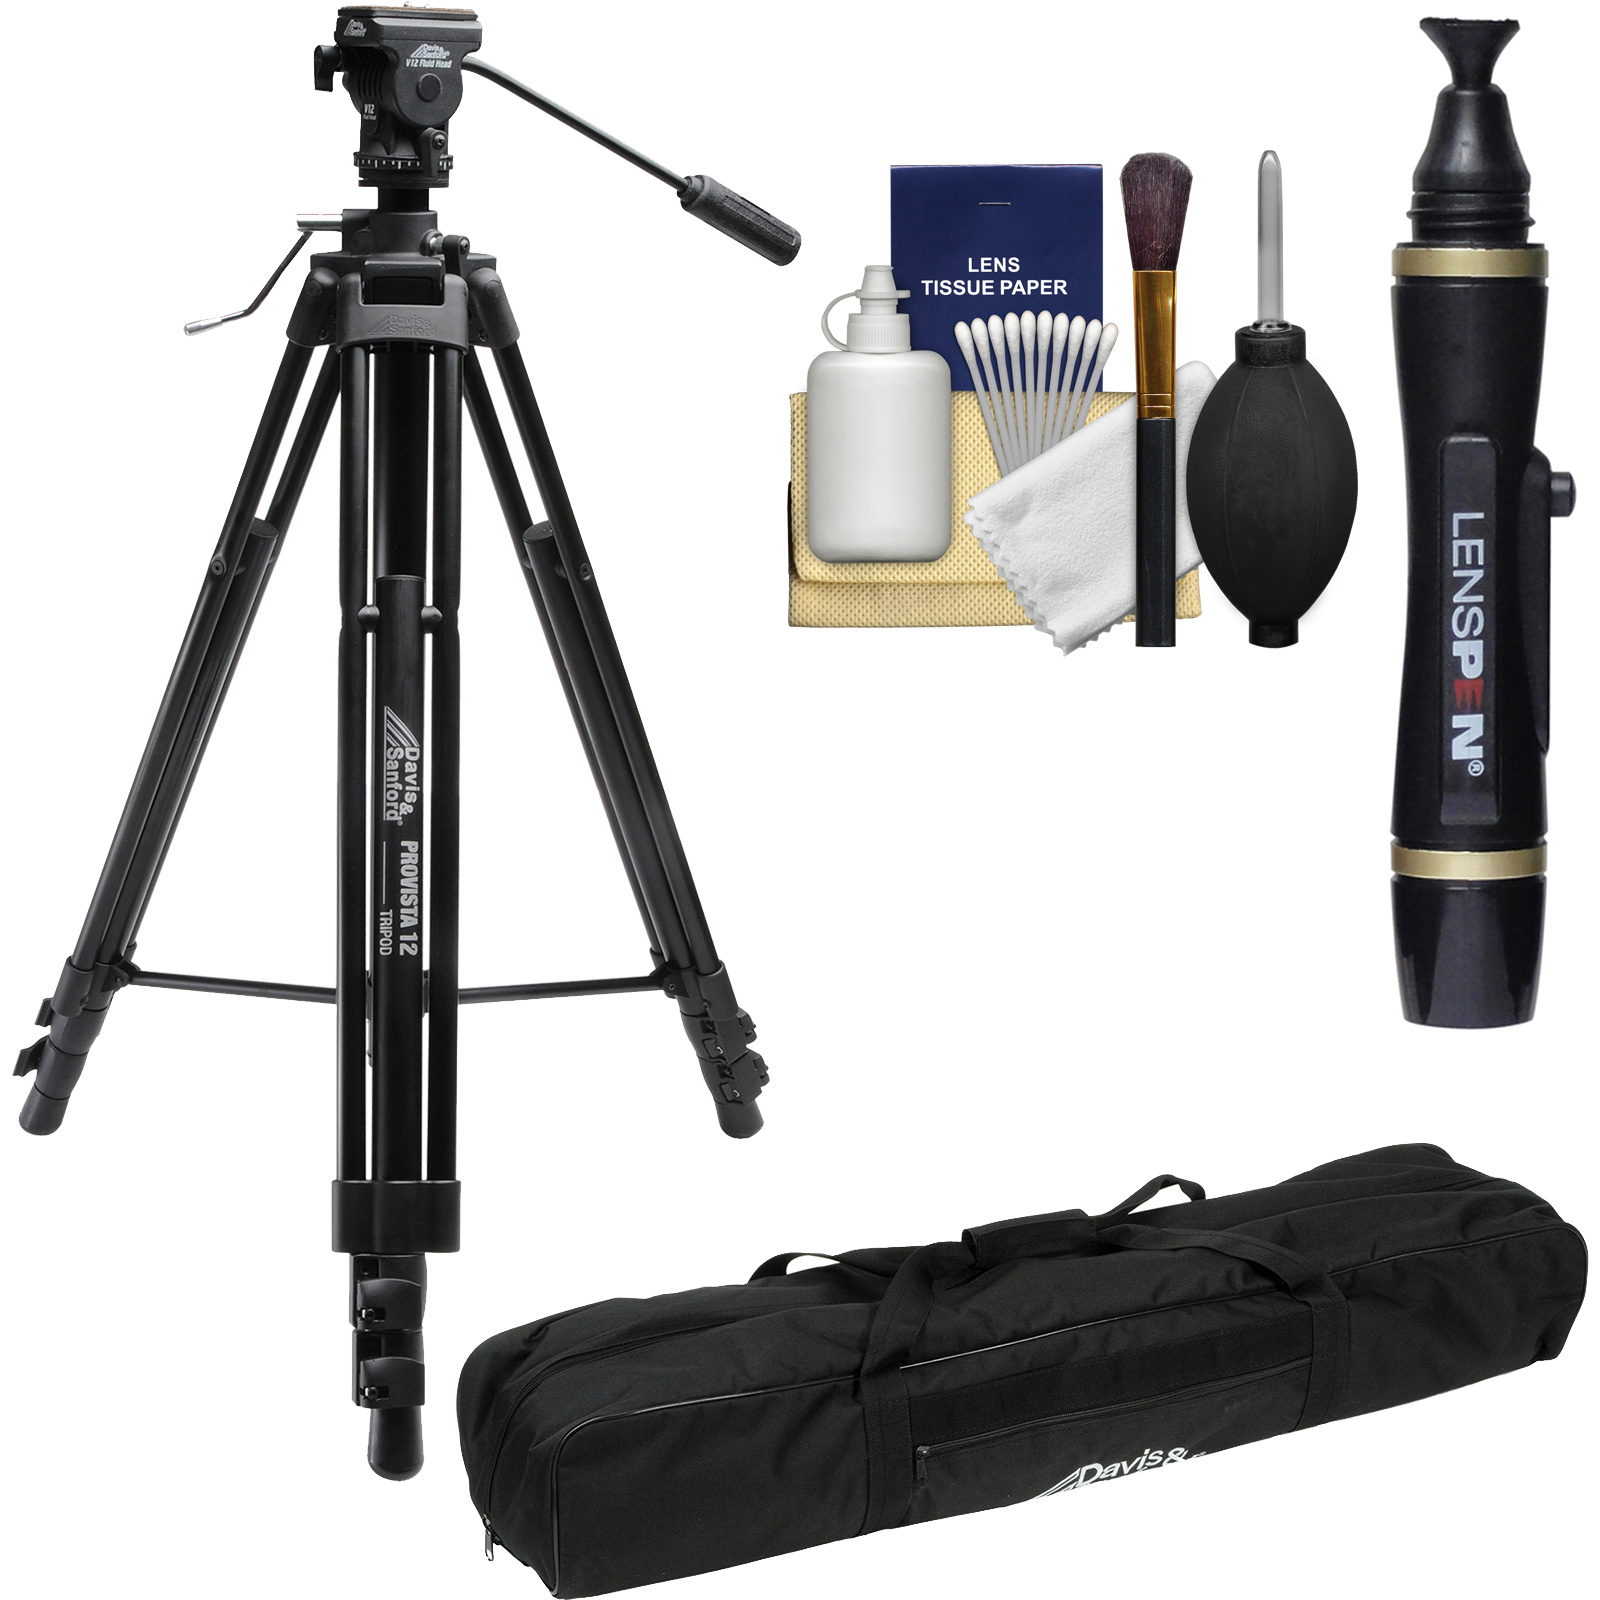 Davis & Sanford ProVista 12 Professional Video Tripod with V12 Head & Case with Lenspen   Kit